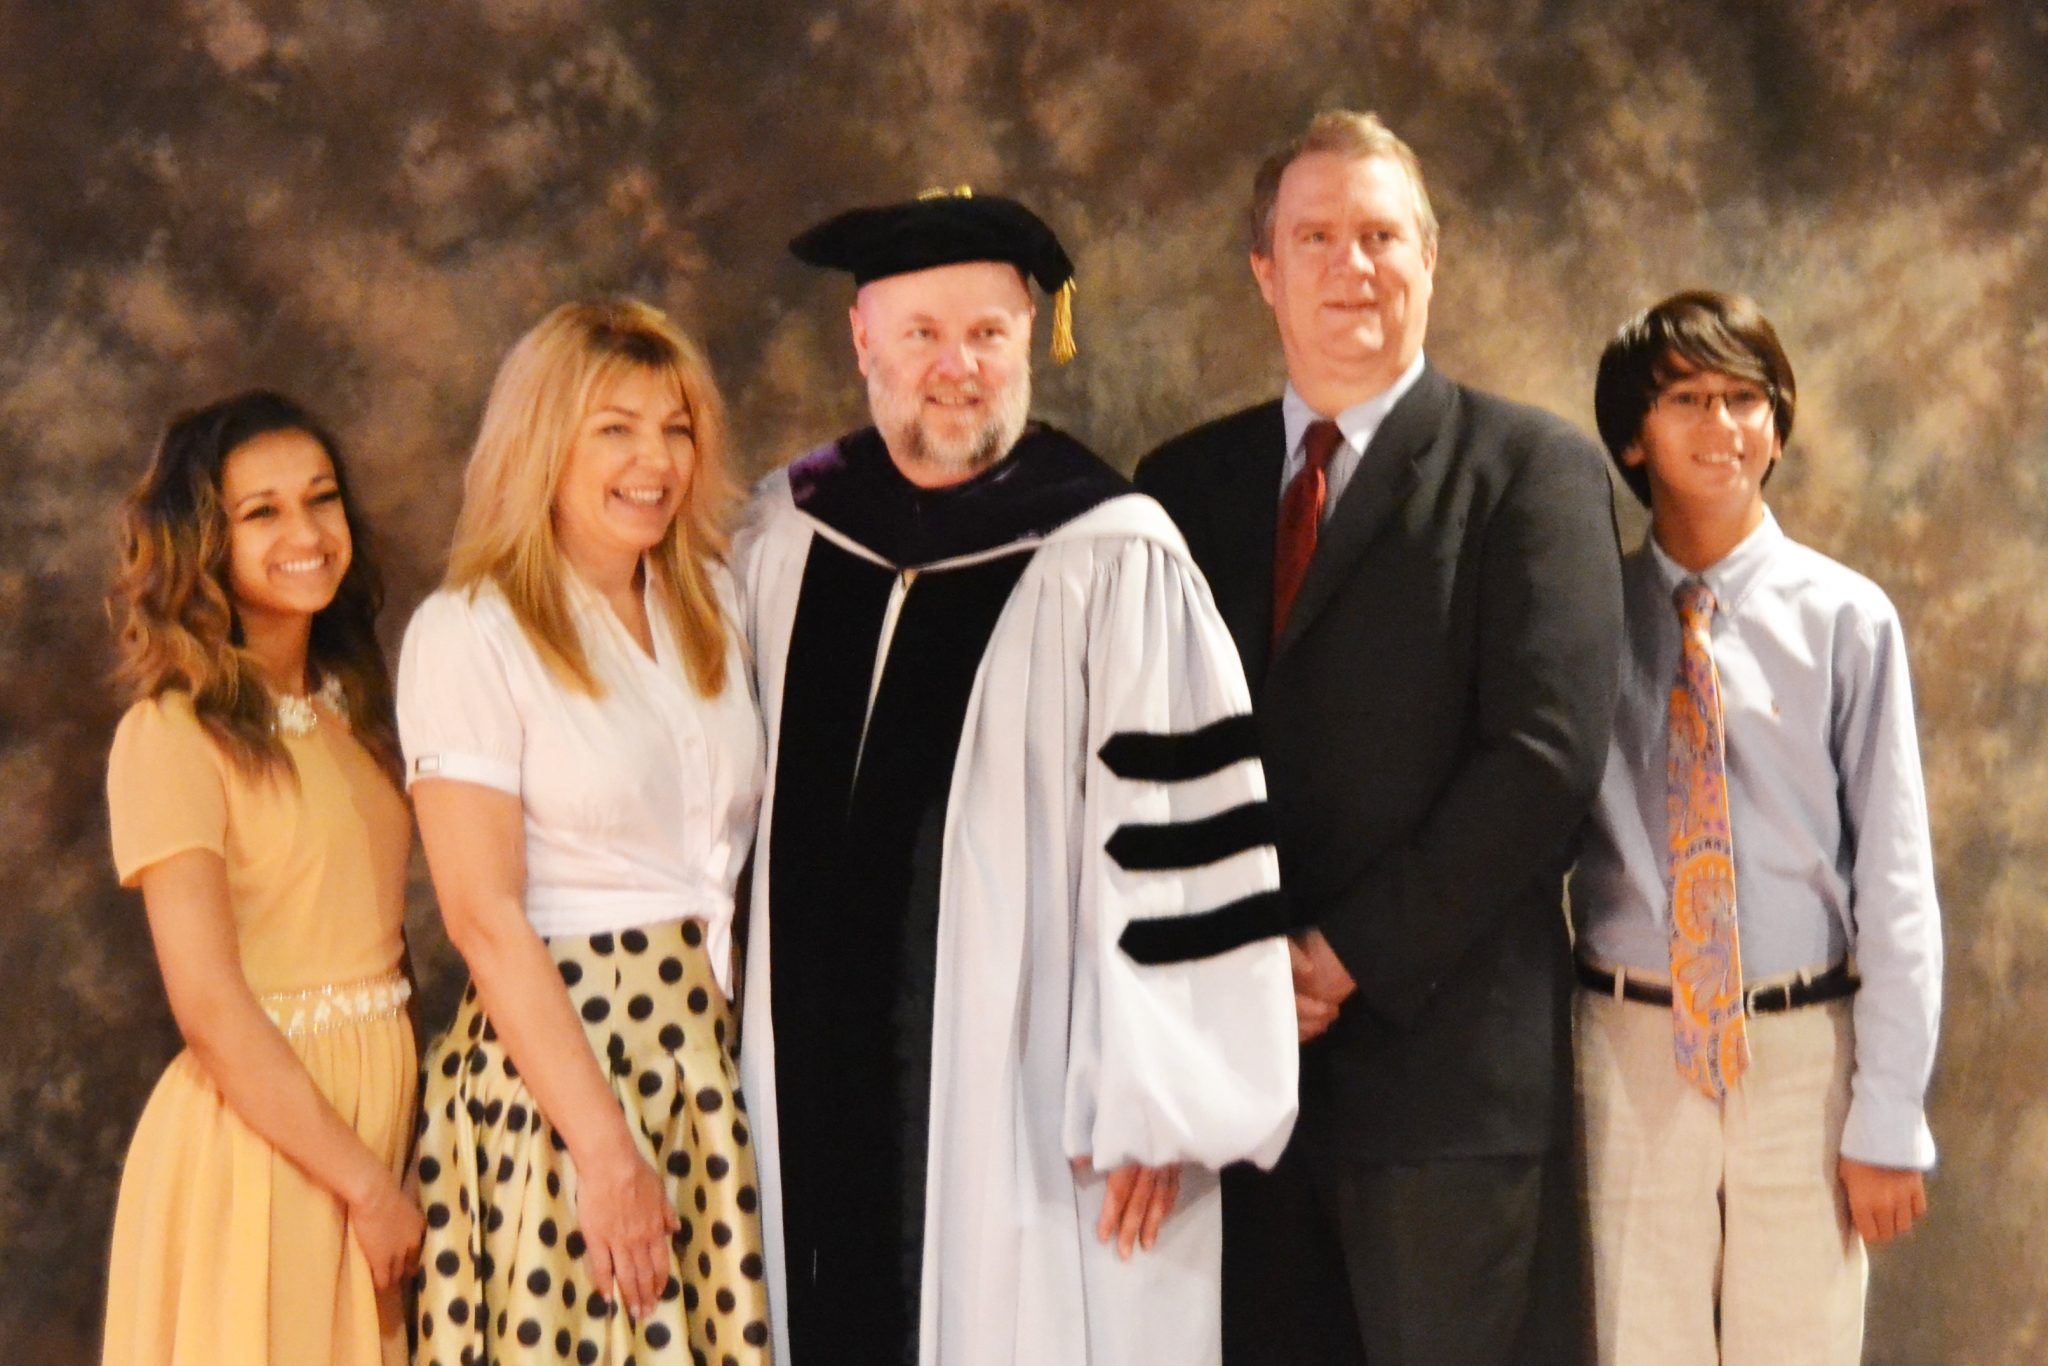 Local attorney receives honor by Nevada Board of Regents